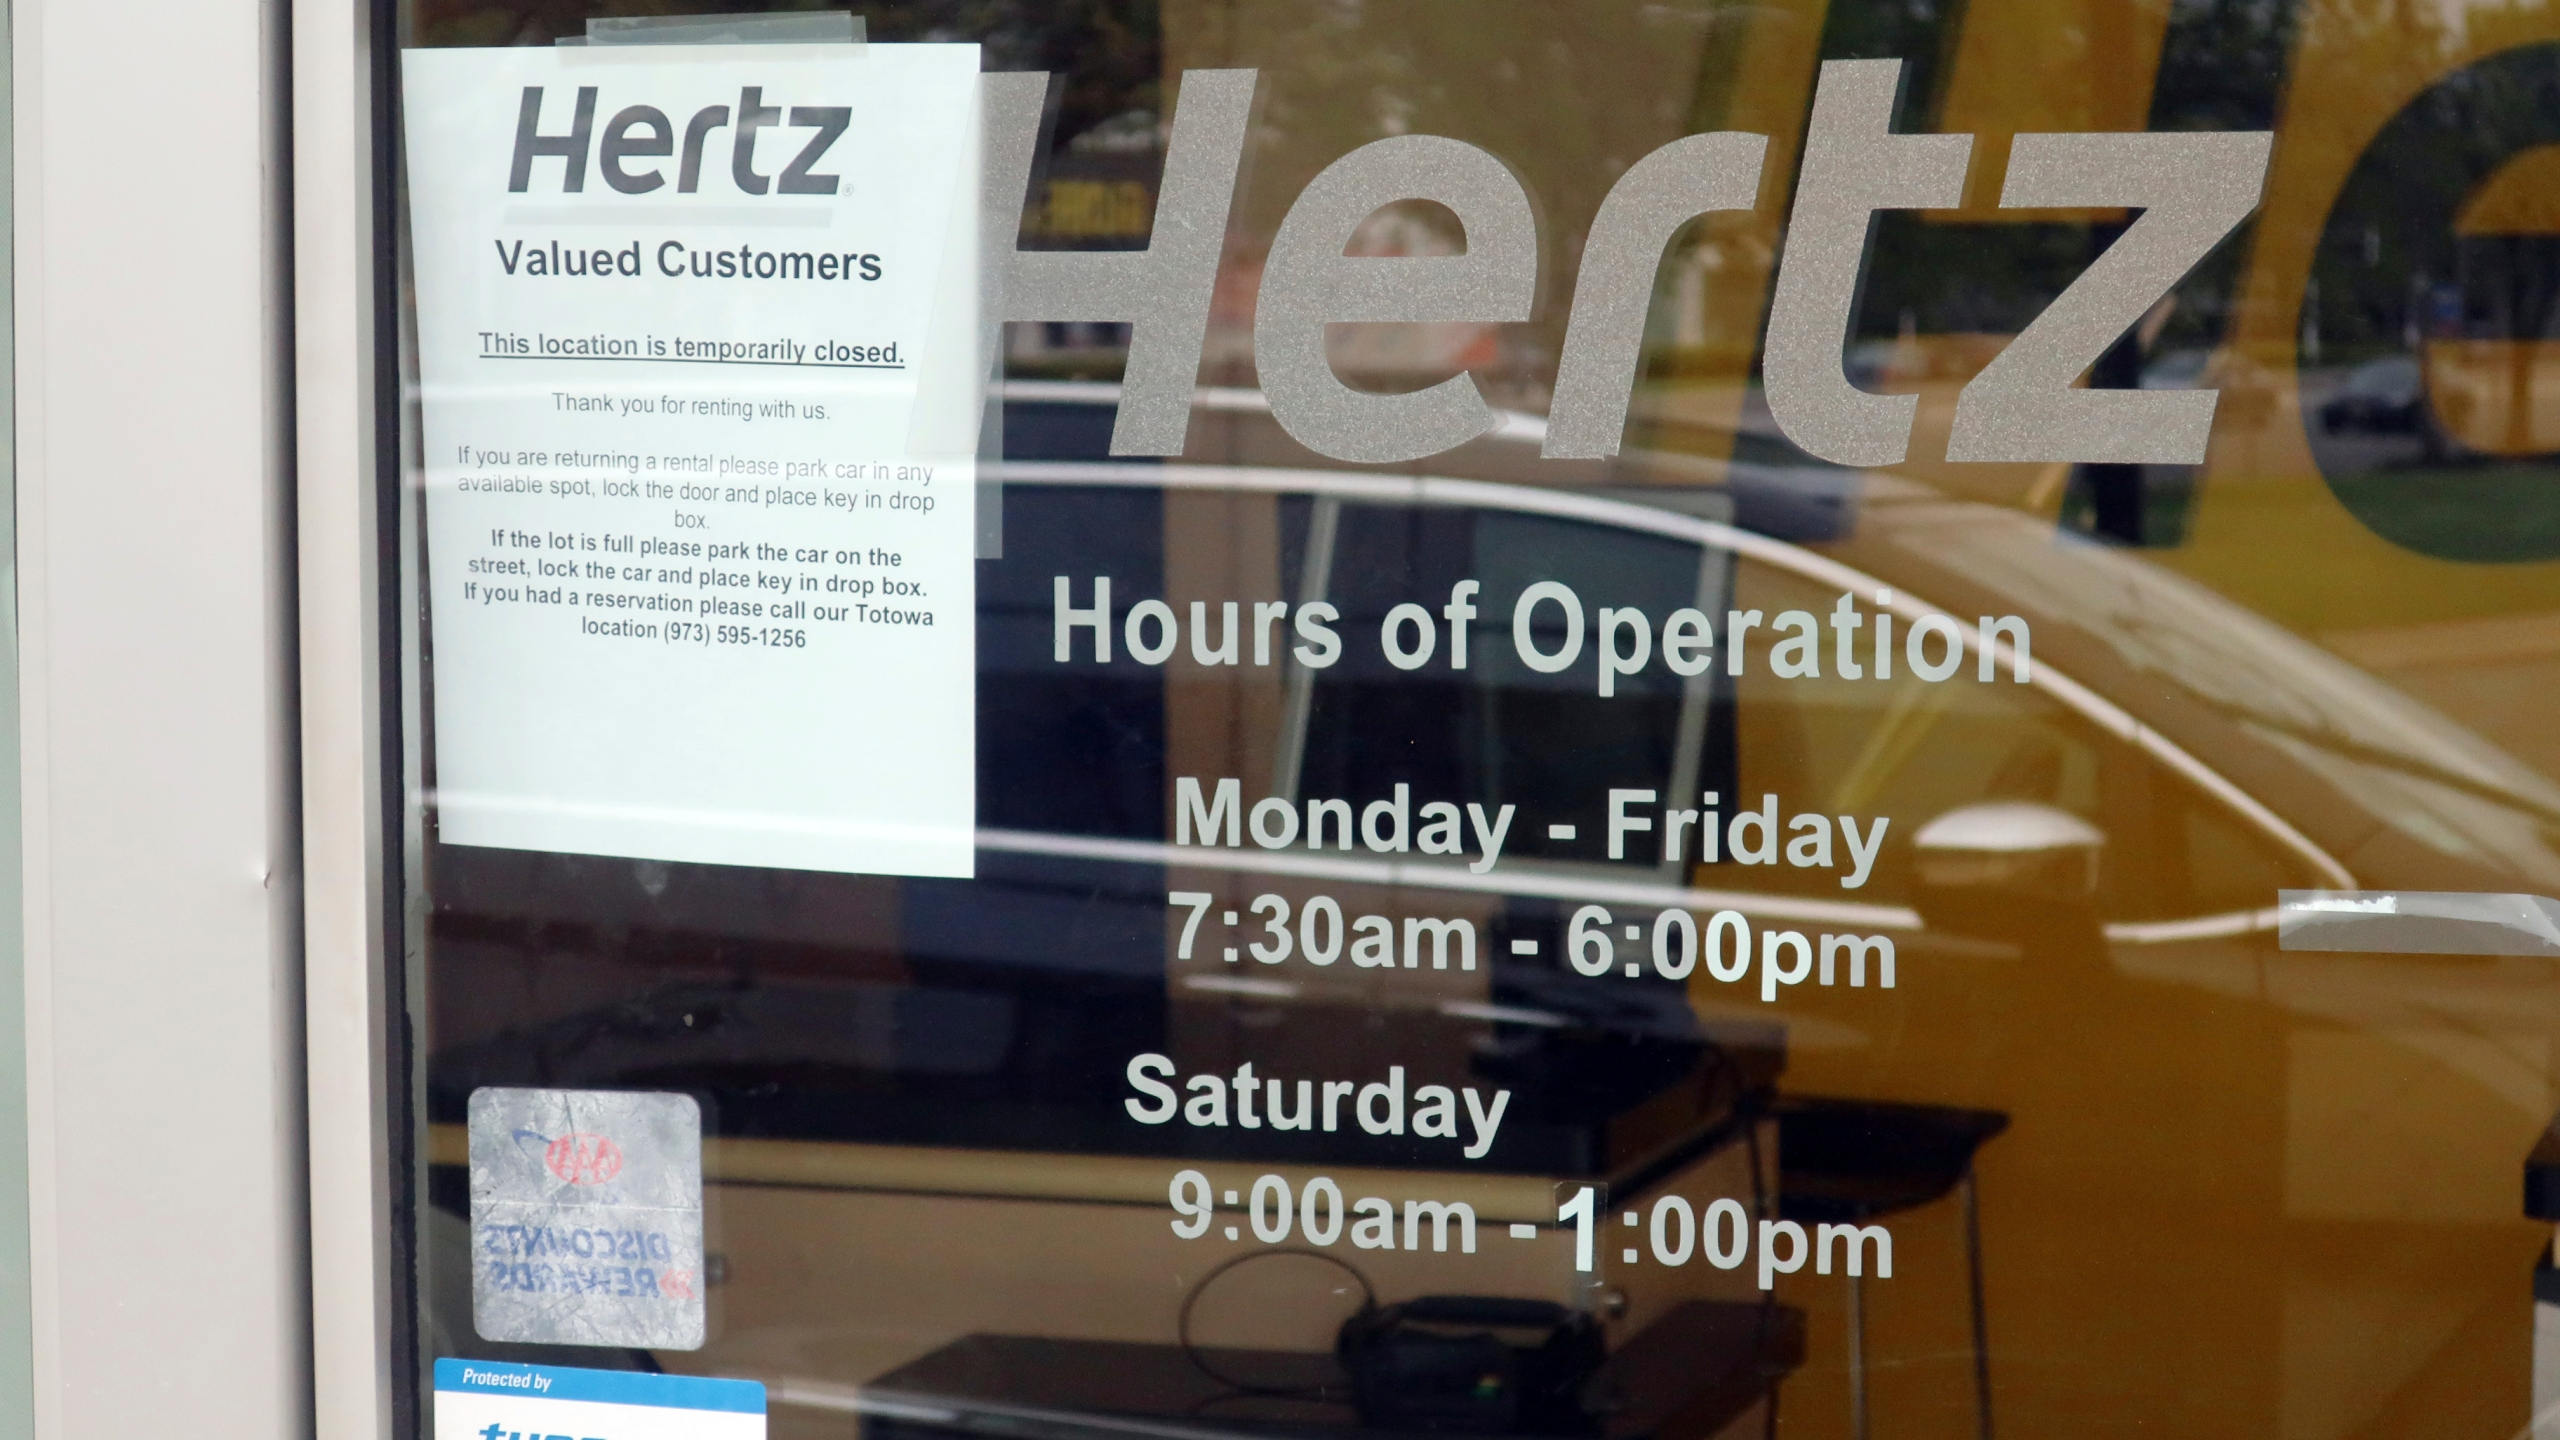 A Hertz Car Rental is closed during he coronavirus pandemic on Wednesday, May 6, 2020 in Paramus, N.J. (AP Photo/Ted Shaffrey)